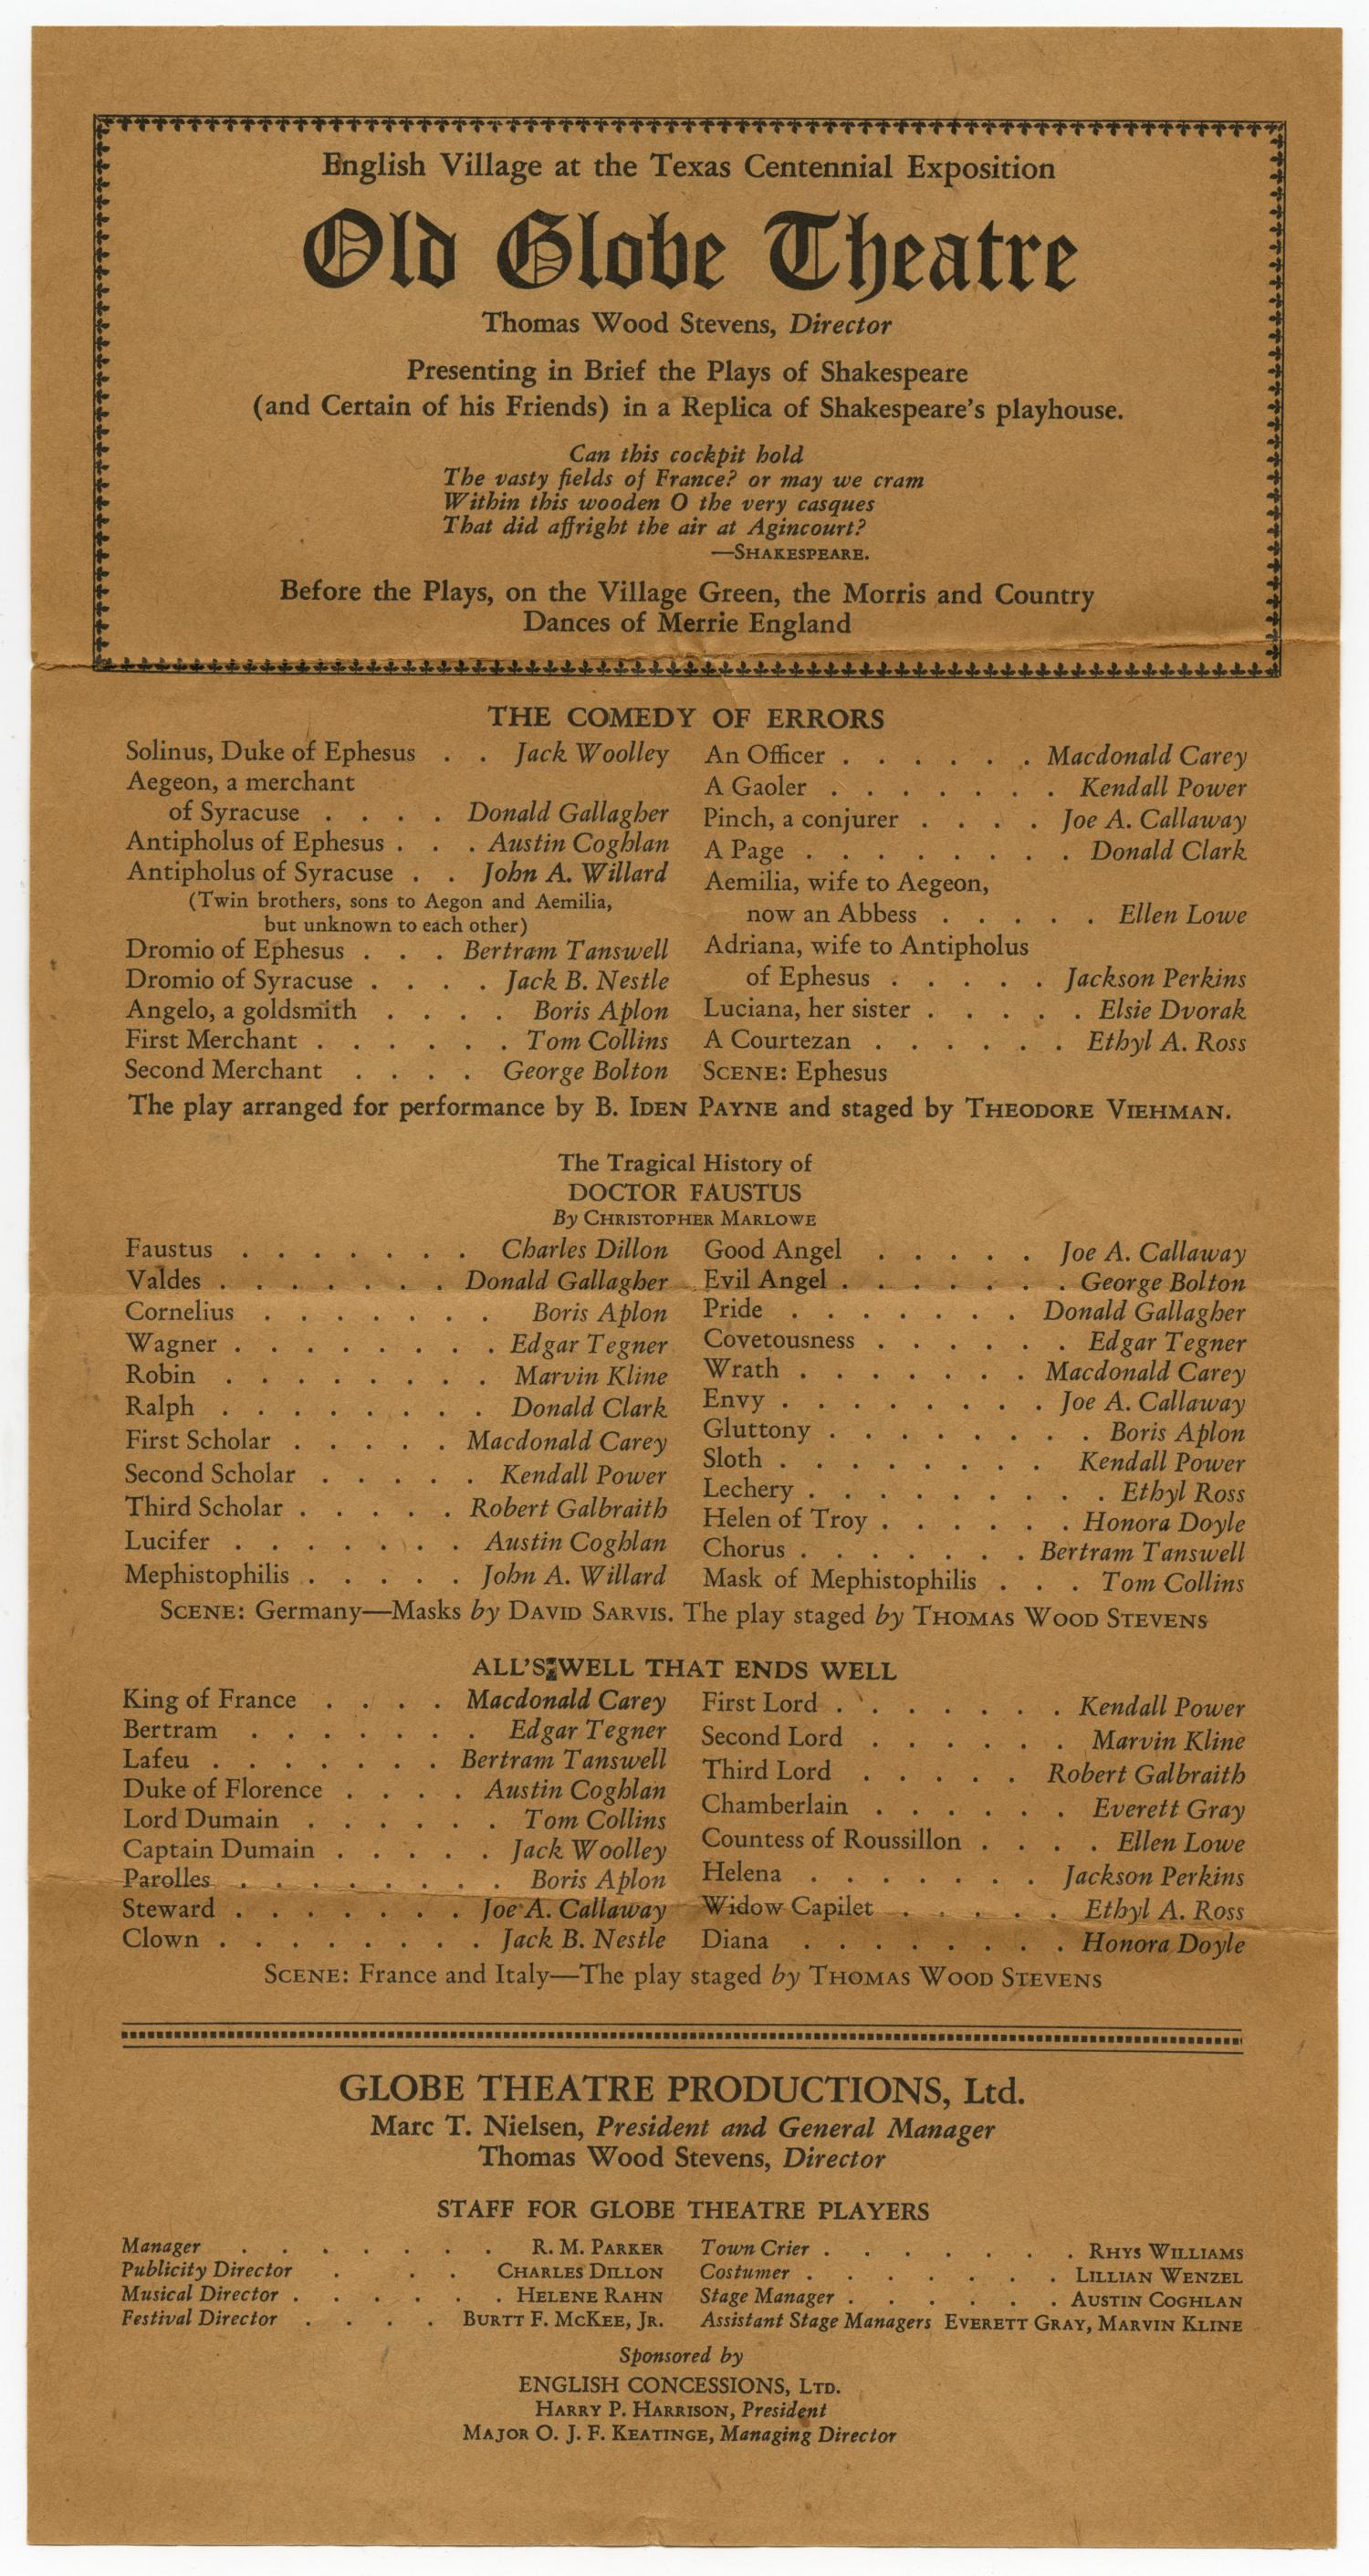 [Program for the Old Globe Theatre Presentation at the Texas Centennial Exposition]                                                                                                      [Sequence #]: 1 of 2